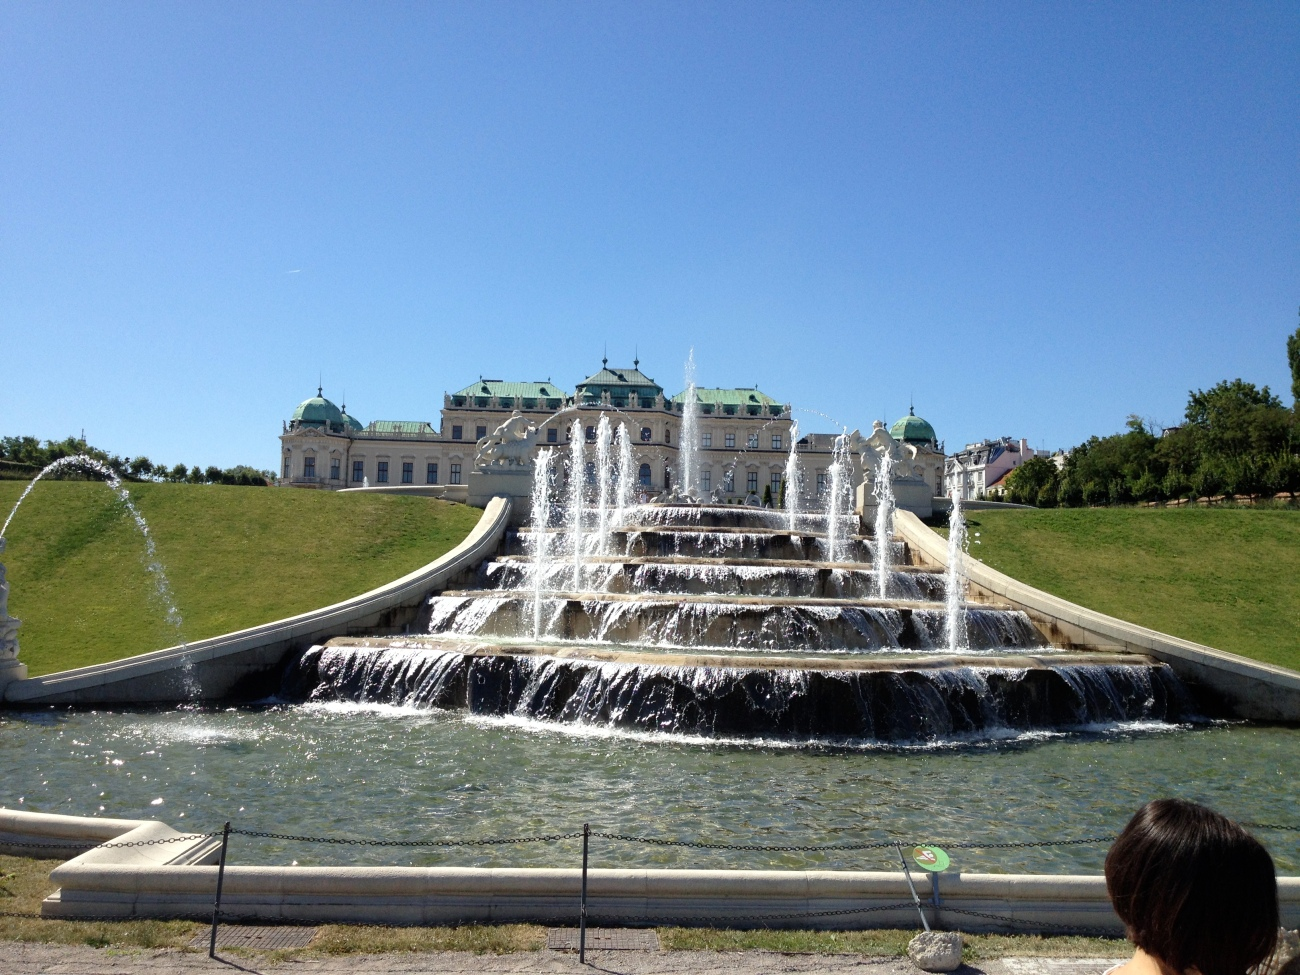 A few of the fountains at the Belvedere.